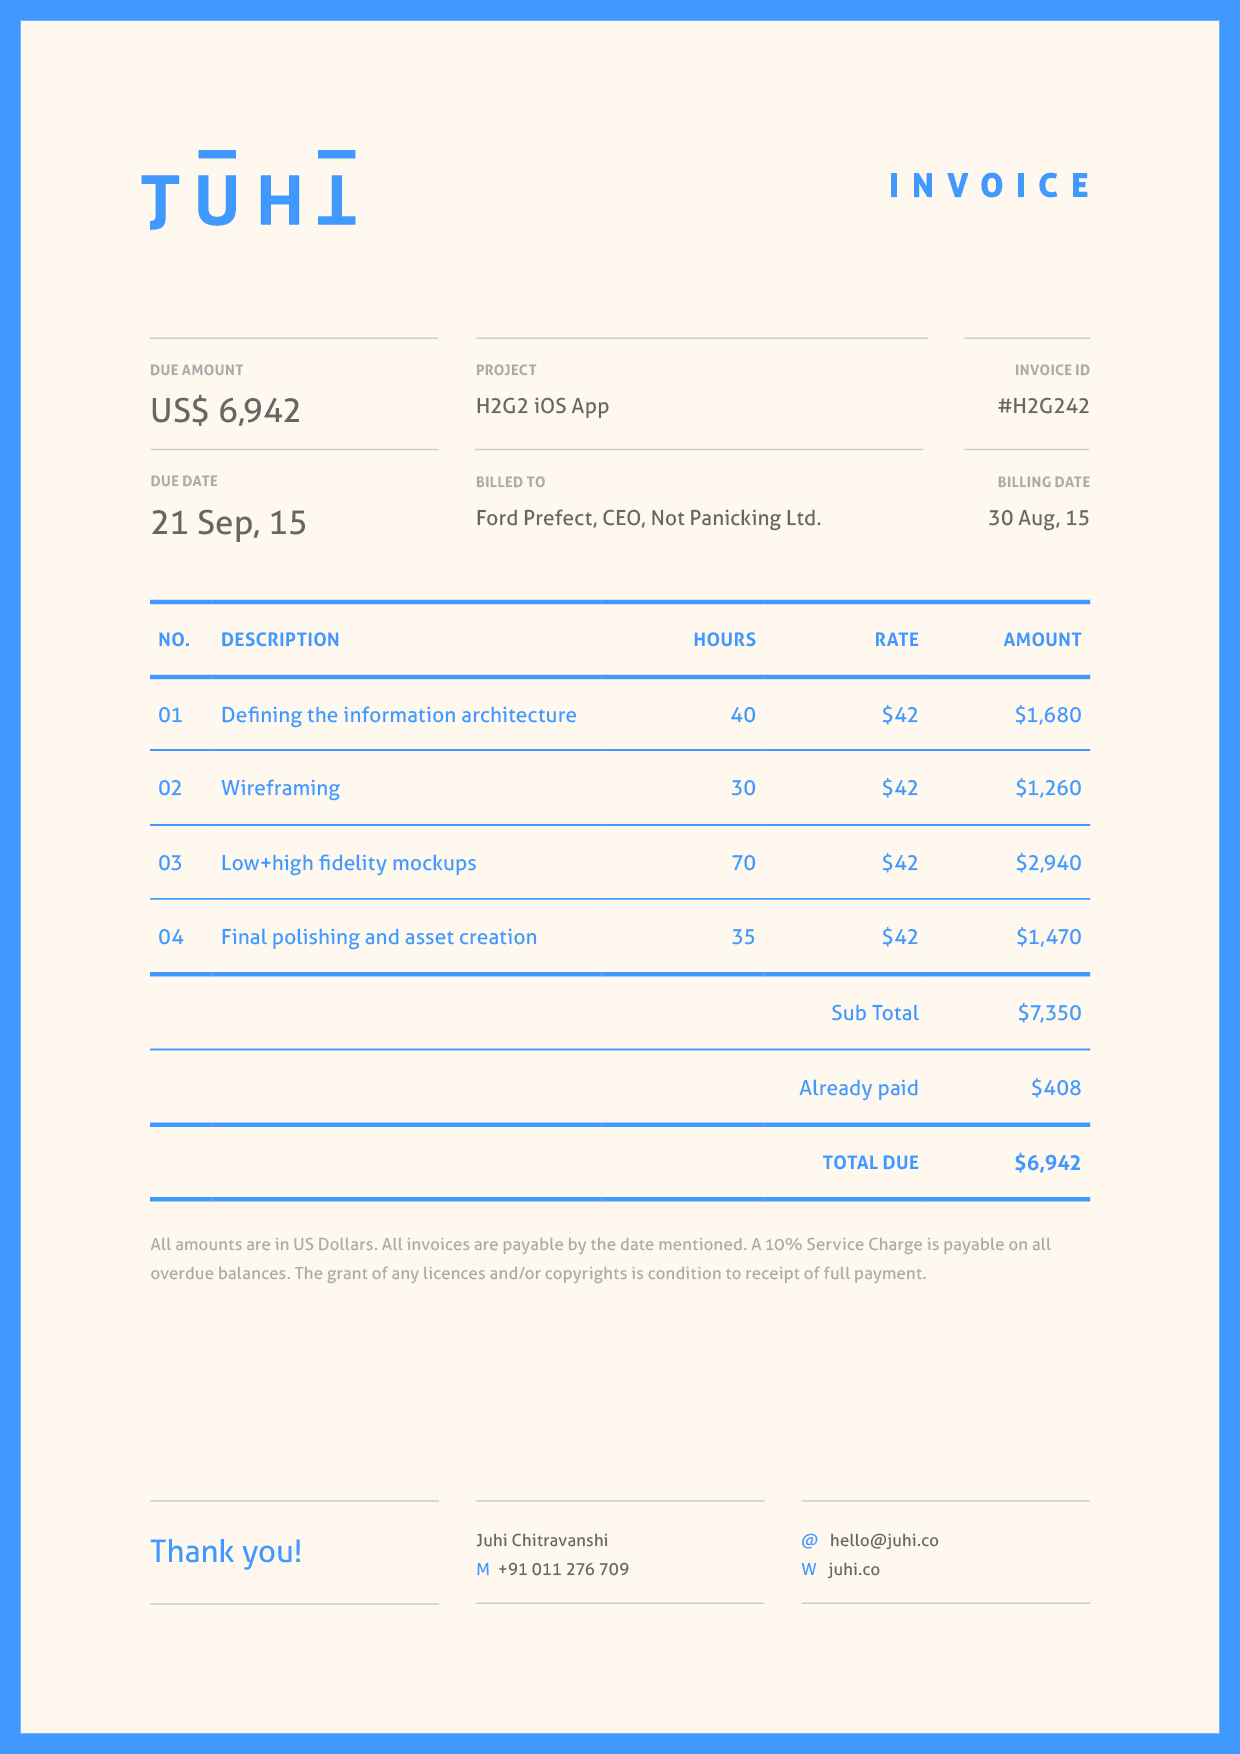 Coachoutletonlineplusus  Marvellous Dont Hold Back On Your Invoice  Inspiring Designs  With Remarkable Invoice By Juhi Chitravanshi Follow With Adorable Rent Receipt Template Word Document Also Certified Return Receipt Cost  In Addition How To Write A Money Receipt And Business Receipt Template Word As Well As Receipts Forms Additionally Pdf Receipt Template From Inspirationfeedcom With Coachoutletonlineplusus  Remarkable Dont Hold Back On Your Invoice  Inspiring Designs  With Adorable Invoice By Juhi Chitravanshi Follow And Marvellous Rent Receipt Template Word Document Also Certified Return Receipt Cost  In Addition How To Write A Money Receipt From Inspirationfeedcom